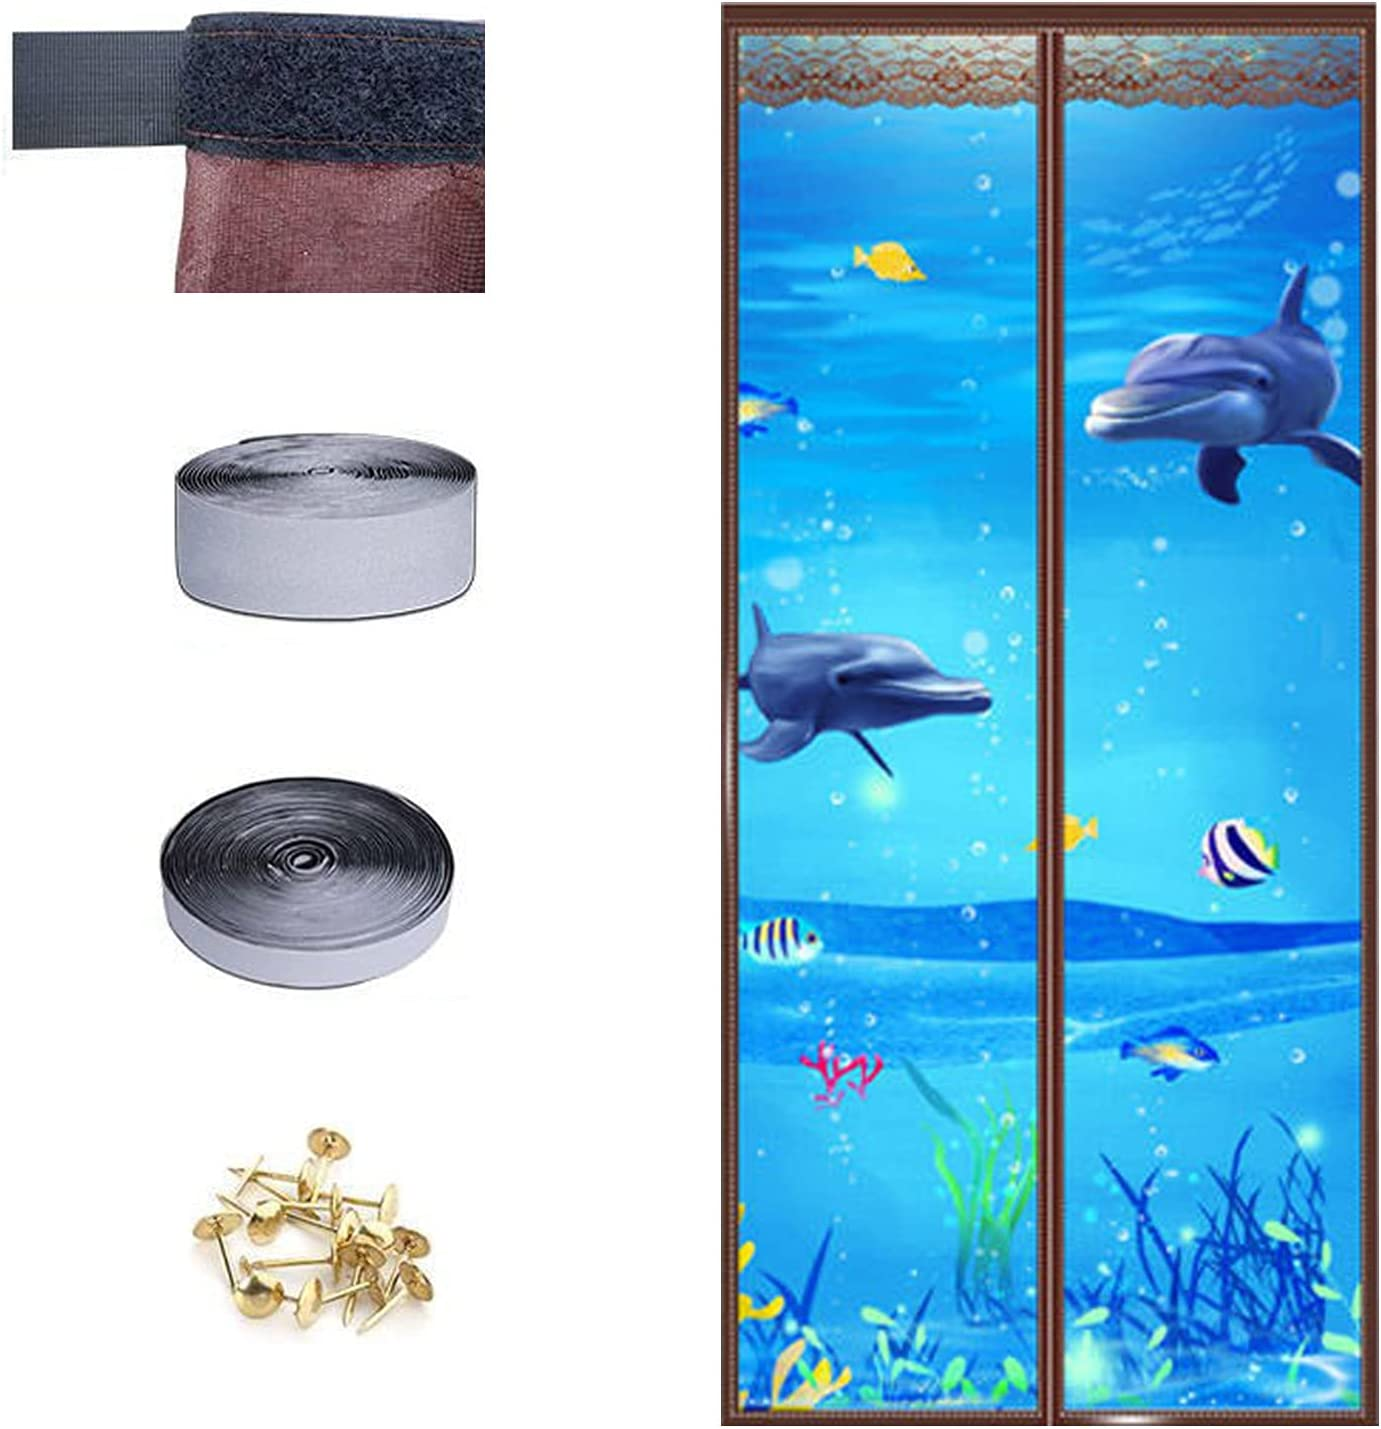 Max 78% OFF 2021 Upgraded Version Magnetic Screen Door with wholesale Frame Full Hoo -